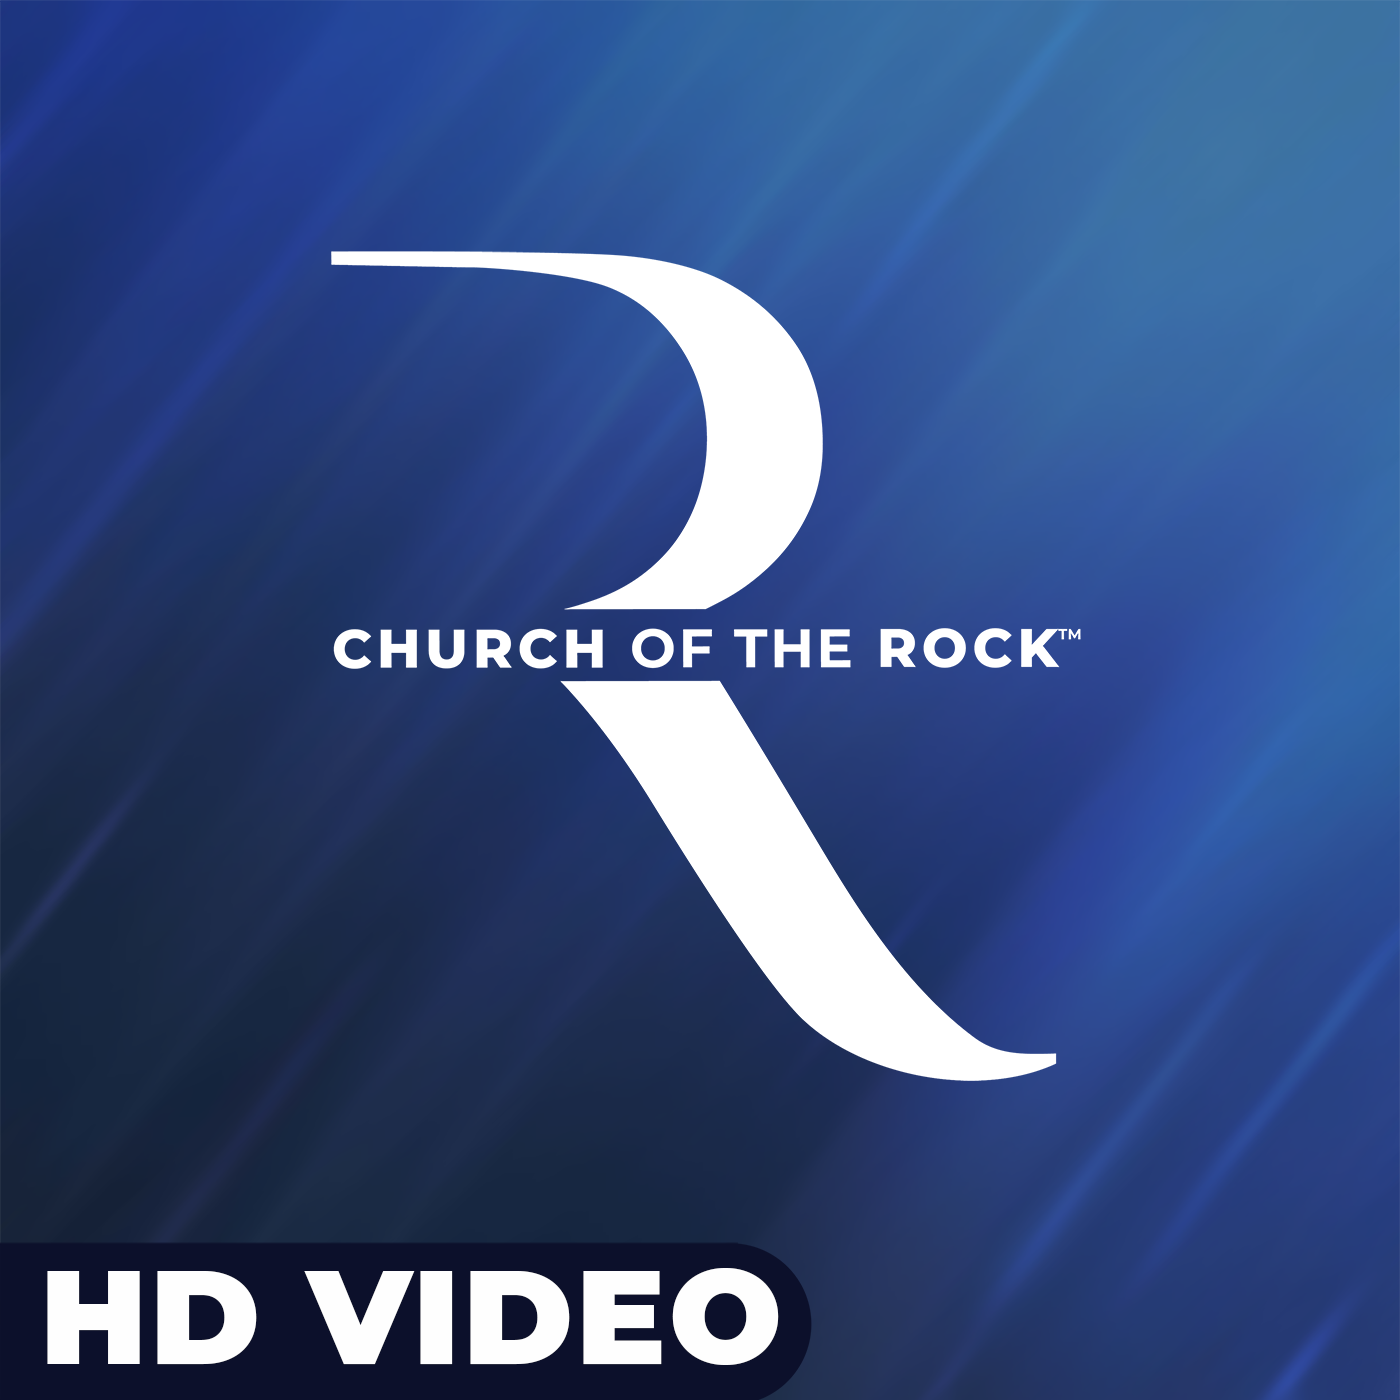 Church of the Rock: Weekend Messages: HD Video